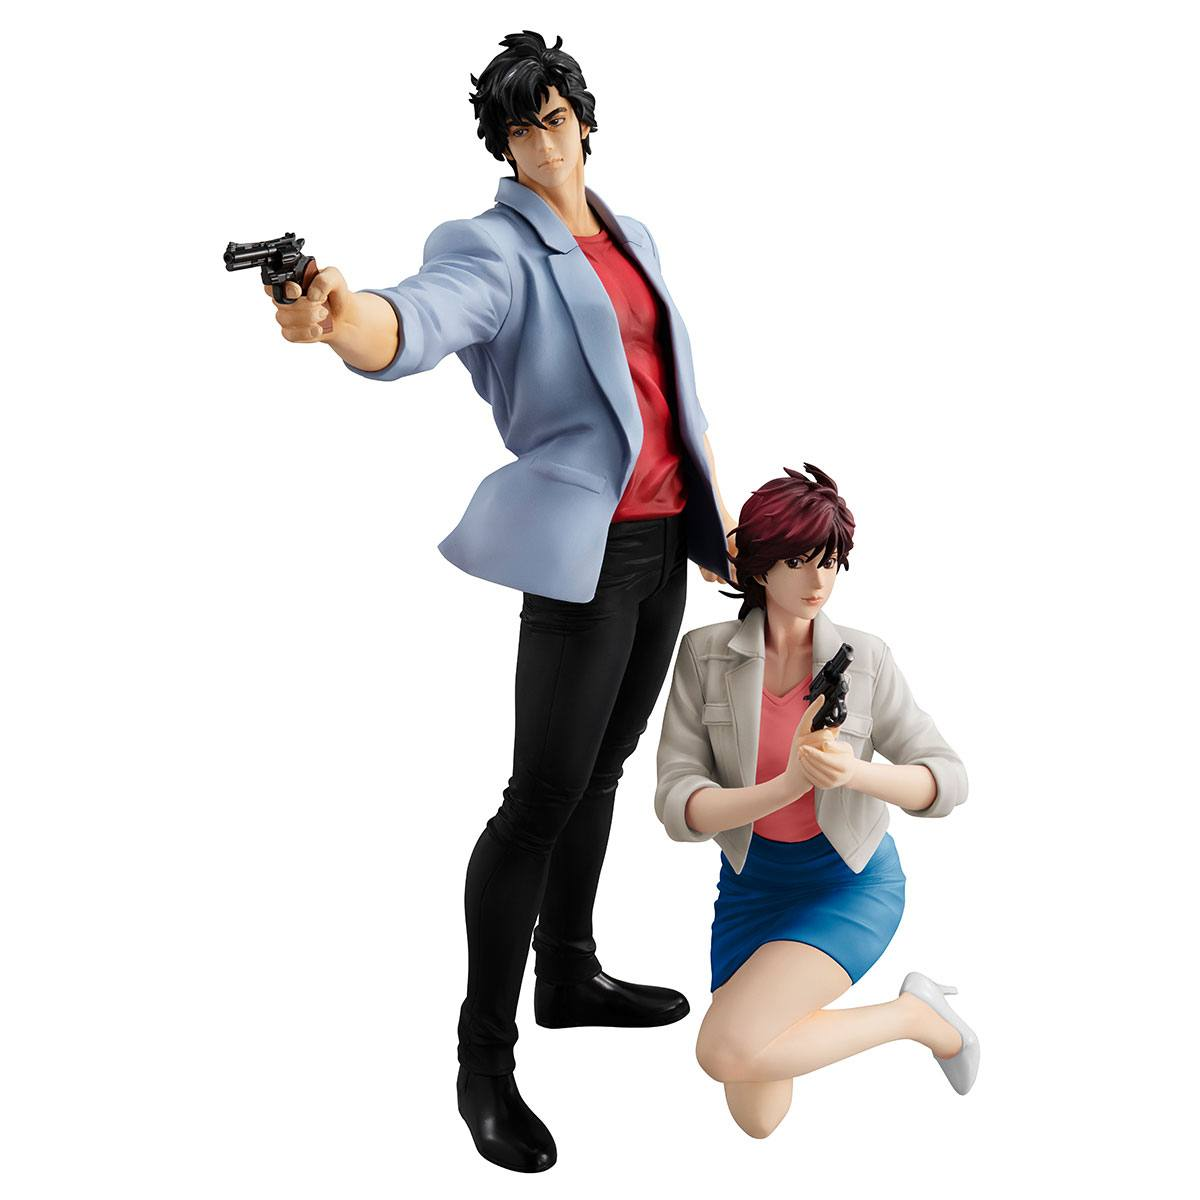 City Hunter Private Eyes - Ryo... | Negozio di anime - ordina qui online  ora - Allblue World